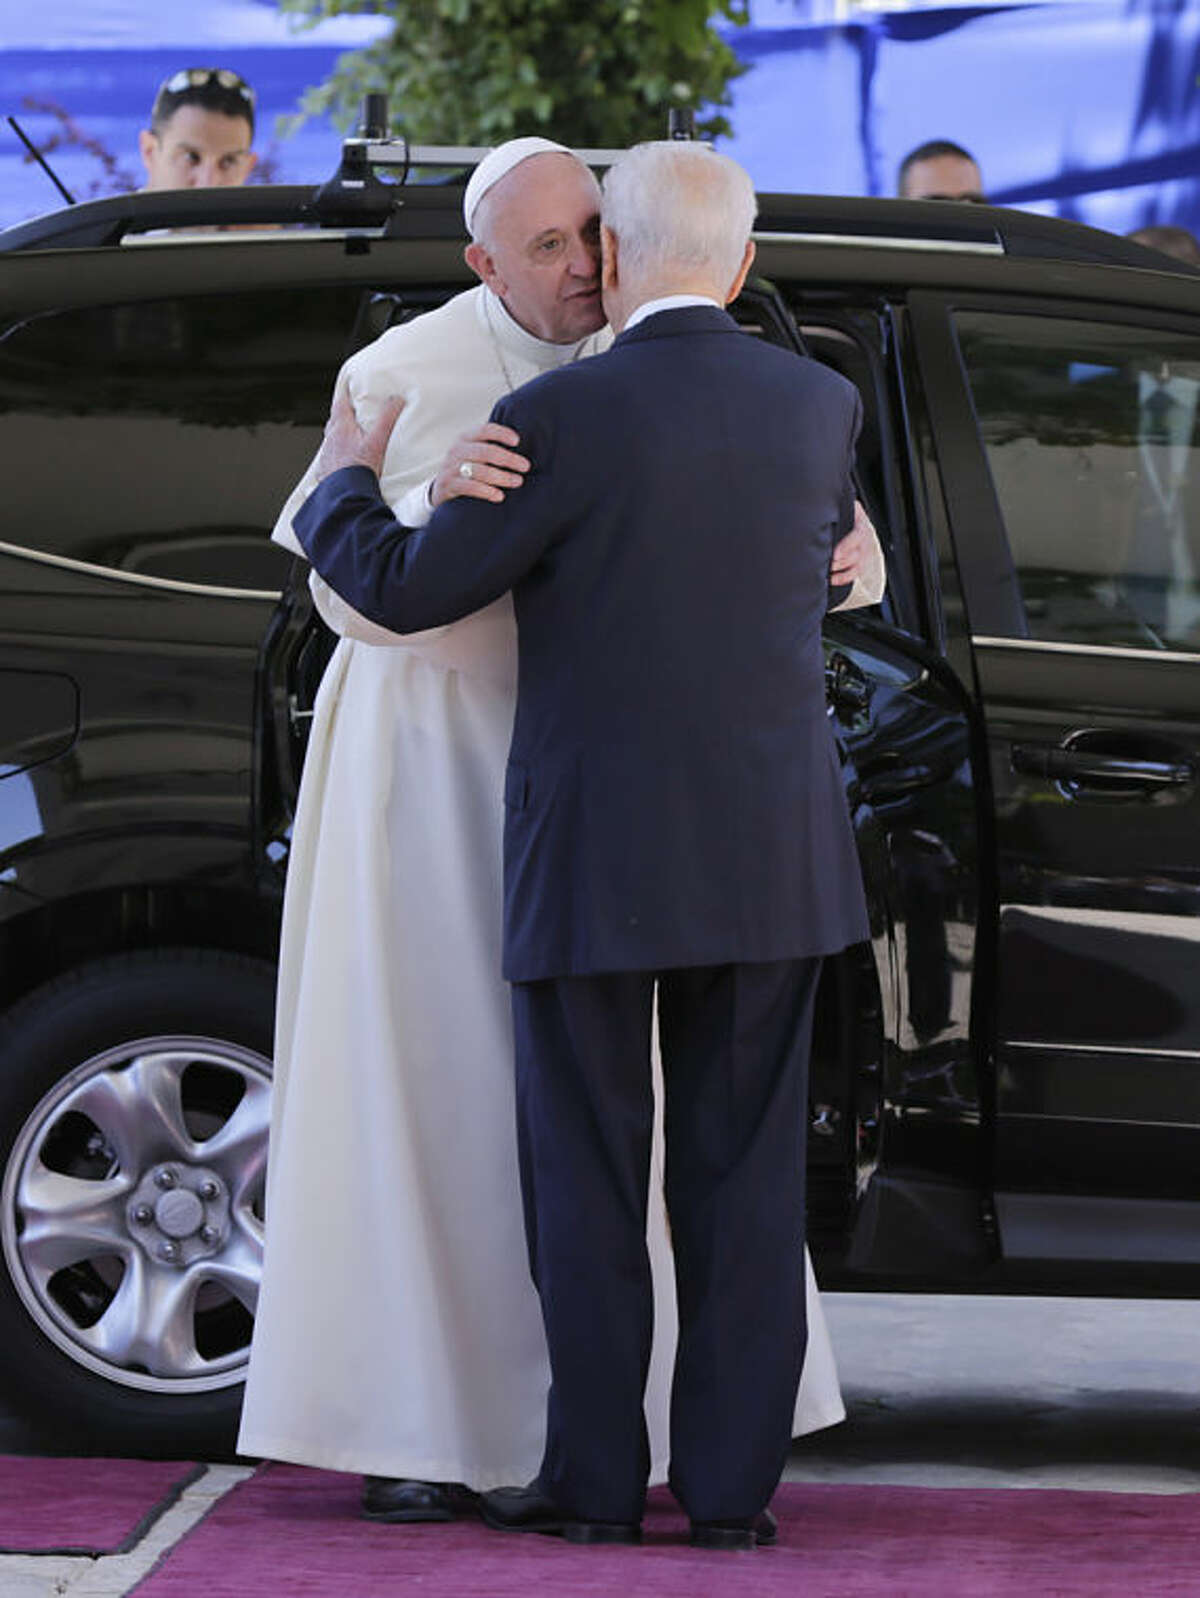 Pope Francis meets Israeli President Shimon Peres in Jerusalem on Monday, May 26, 2014. Pope Francis is paying a three-day visit to Jordan, West Bank and Israel. Francis honored Jews killed in the Holocaust, kissing the hands of six survivors in an emotional ceremony at Israel's national Holocaust memorial on Monday as he capped a Mideast trip with poignant stops at some of the holiest and most haunting sites for Jews. (AP Photo/Tsafrir Abayov, Pool)